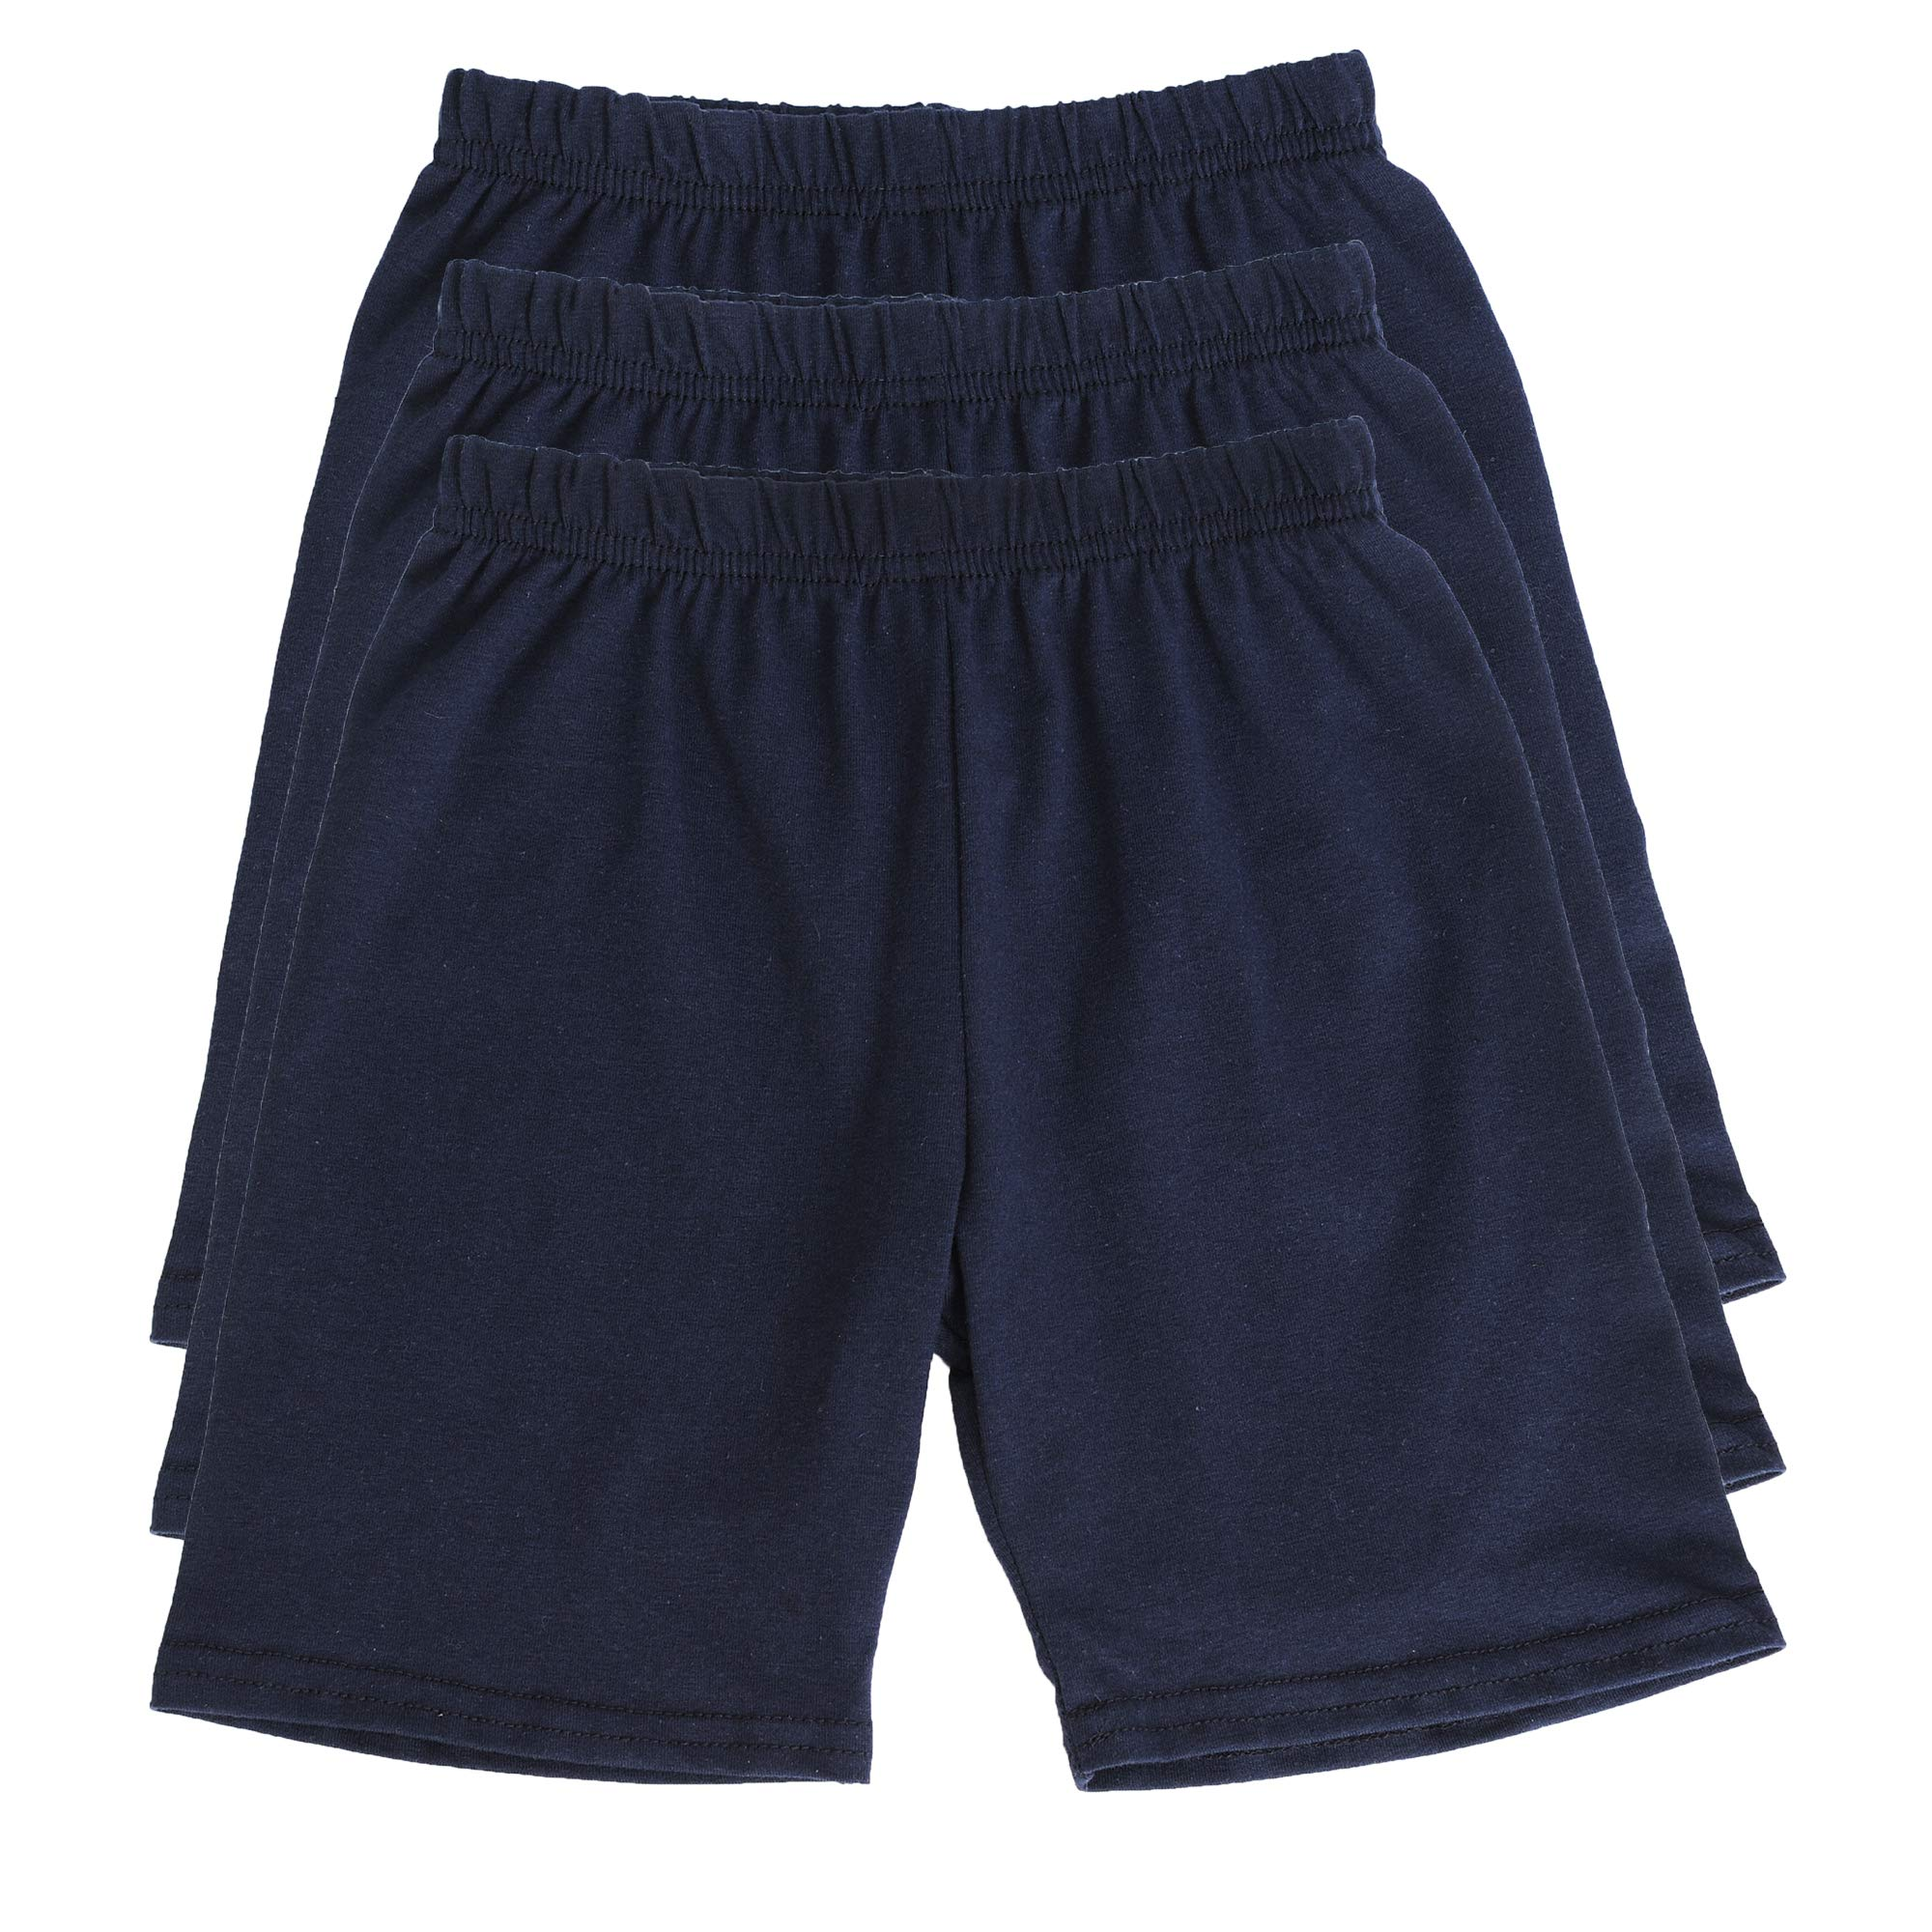 My Way Girls' Solid Cotton Bike Shorts (Pack of 3) - Sizes 2-14 Made in USA (4, Navy)